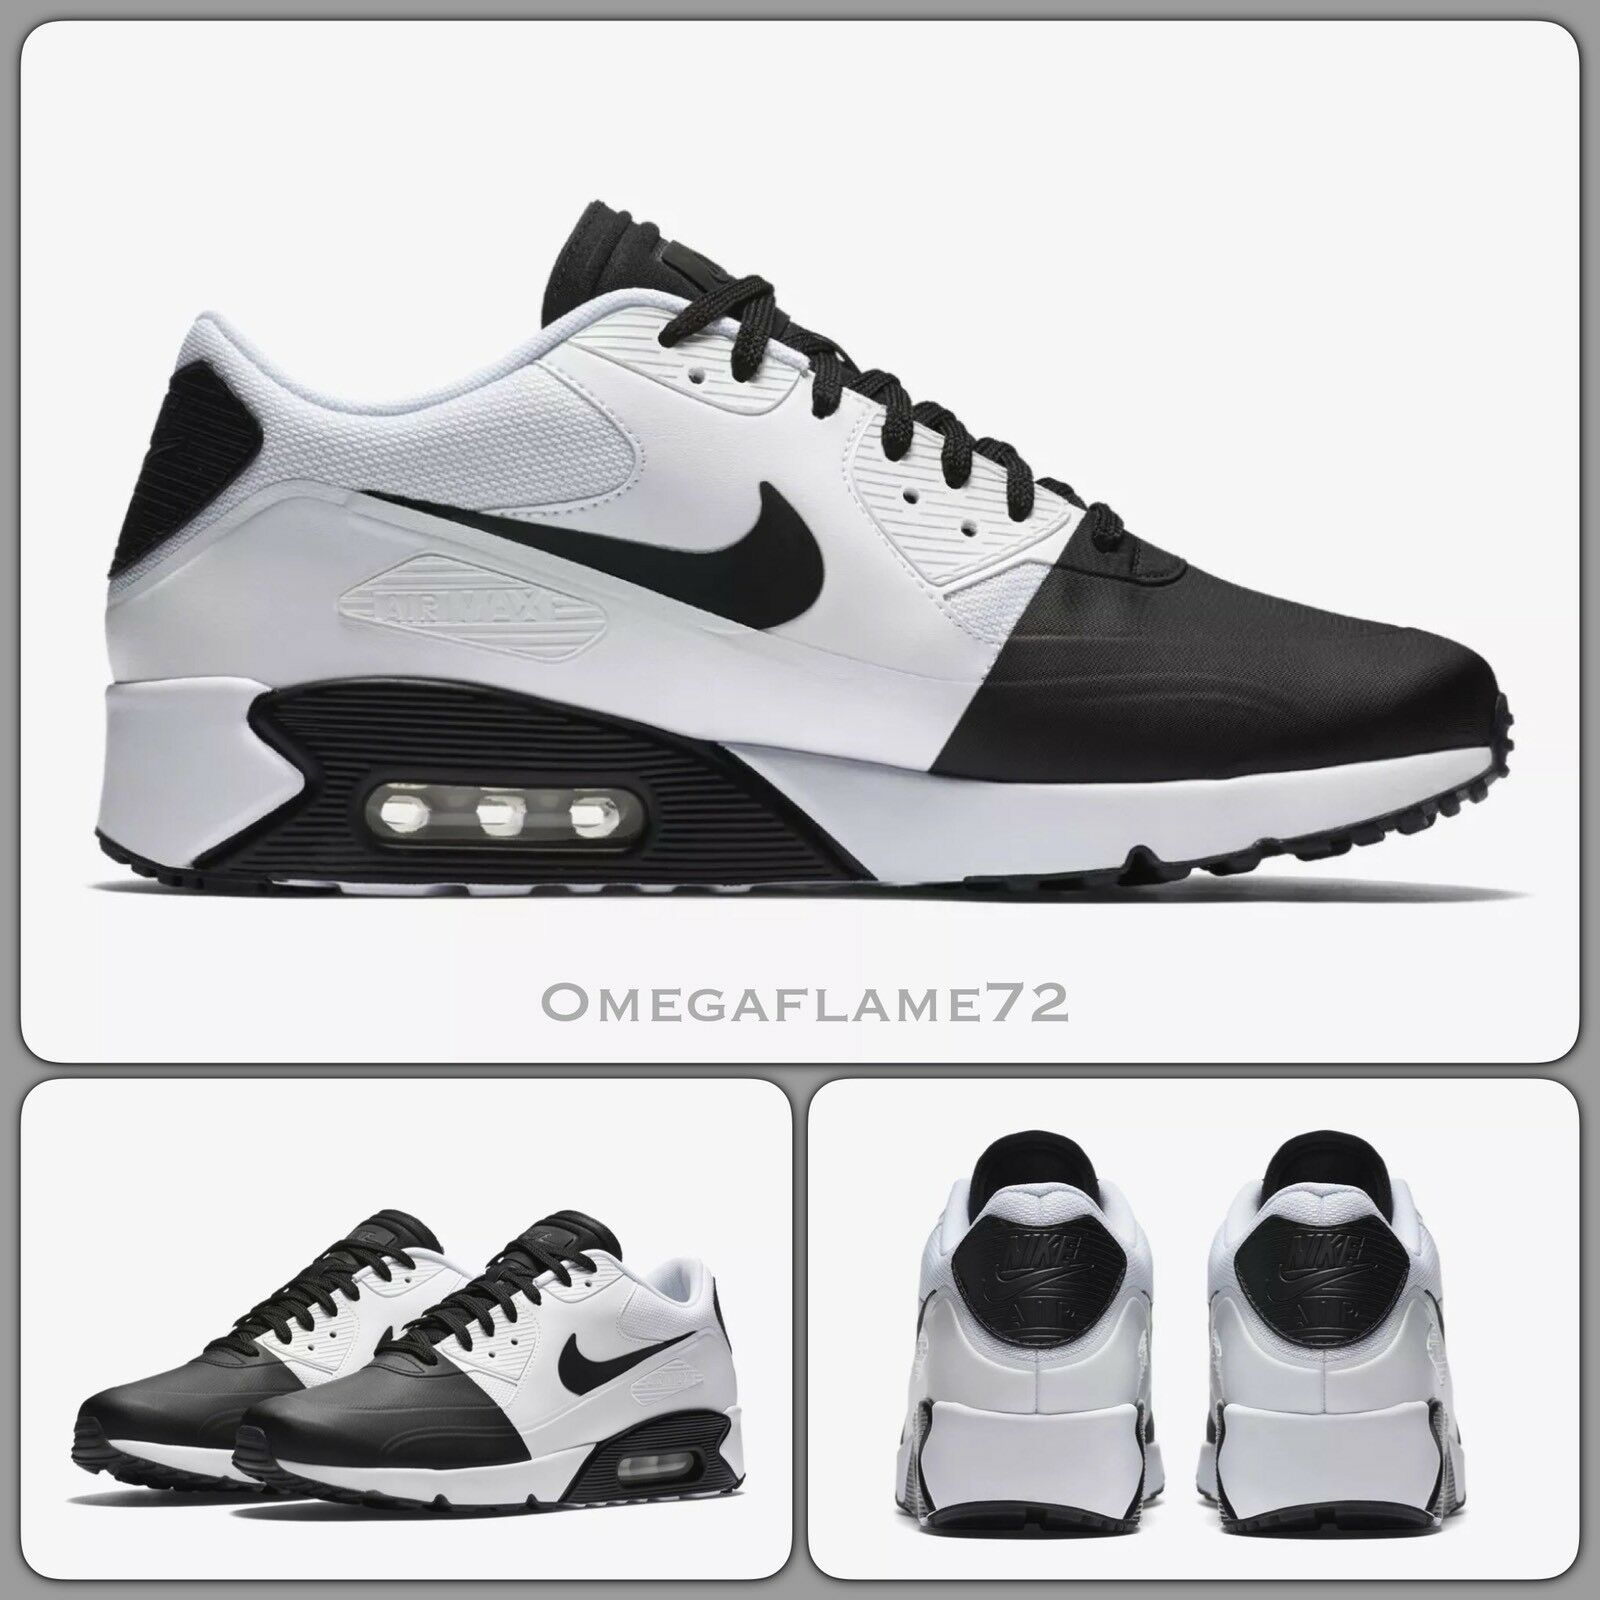 Nike Air Max90 Ultra 2.0 SE, Black Black Black & White, 876005-002 USA 11 88215d